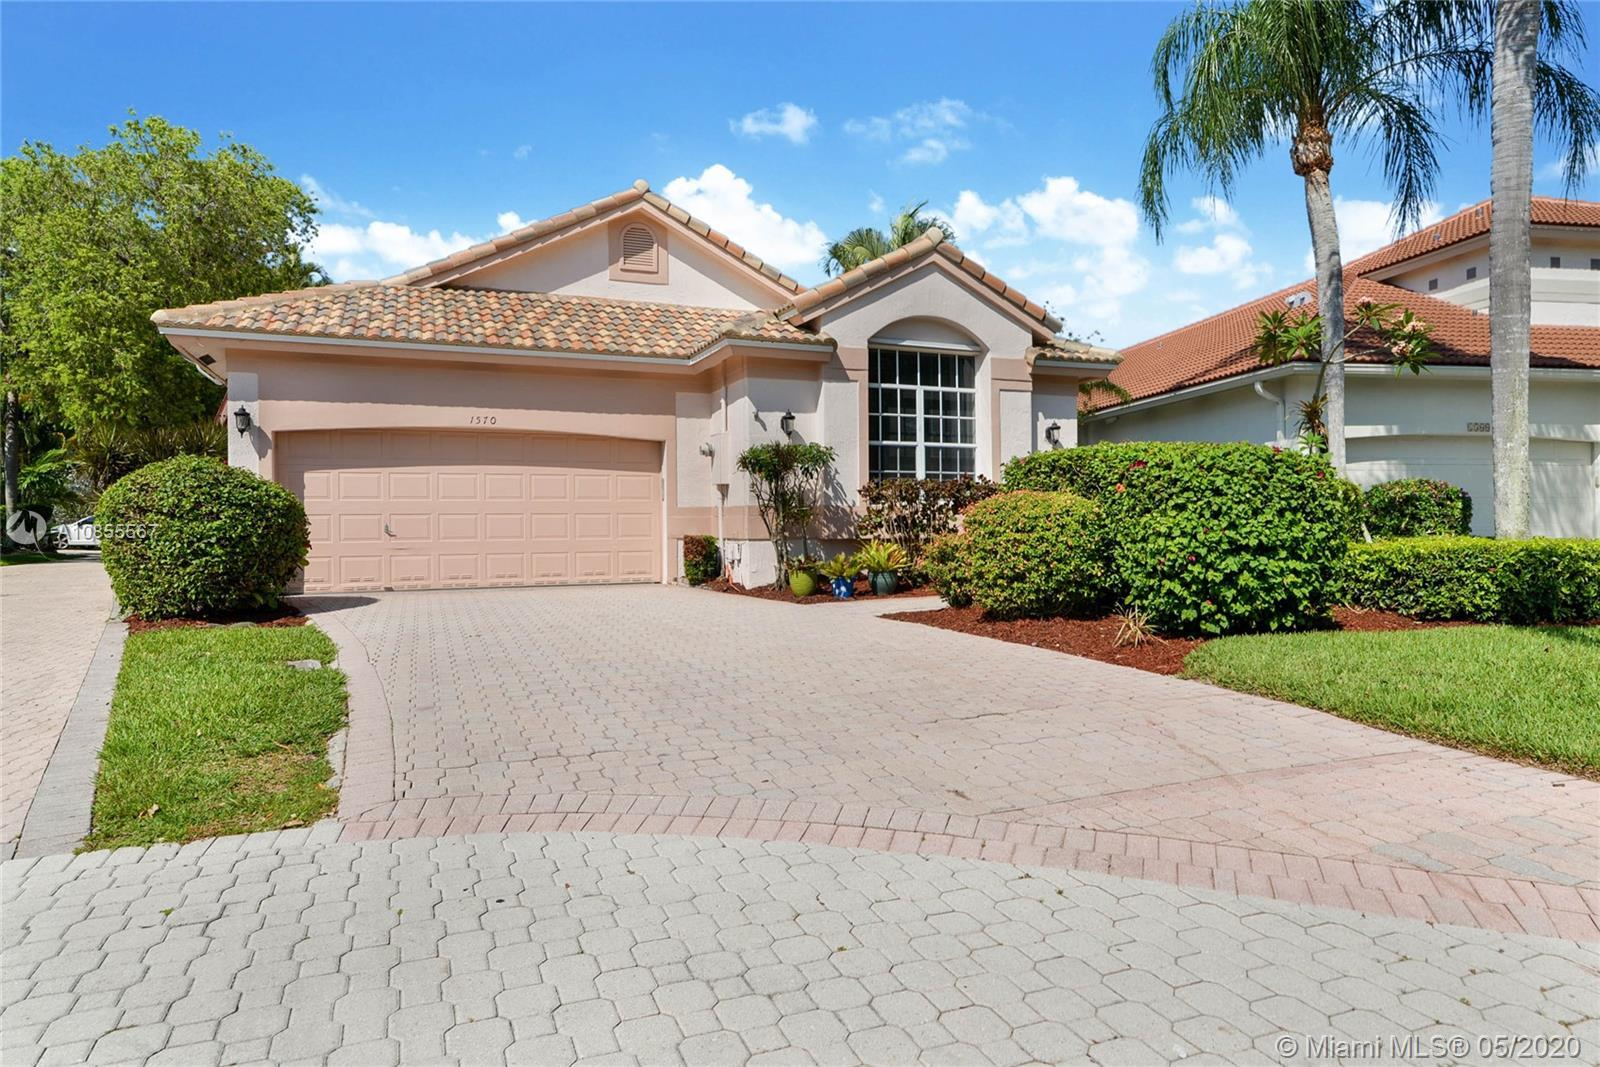 Beautiful home in prestigious Grand Palms community featuring lush landscaping, jogging paths, child